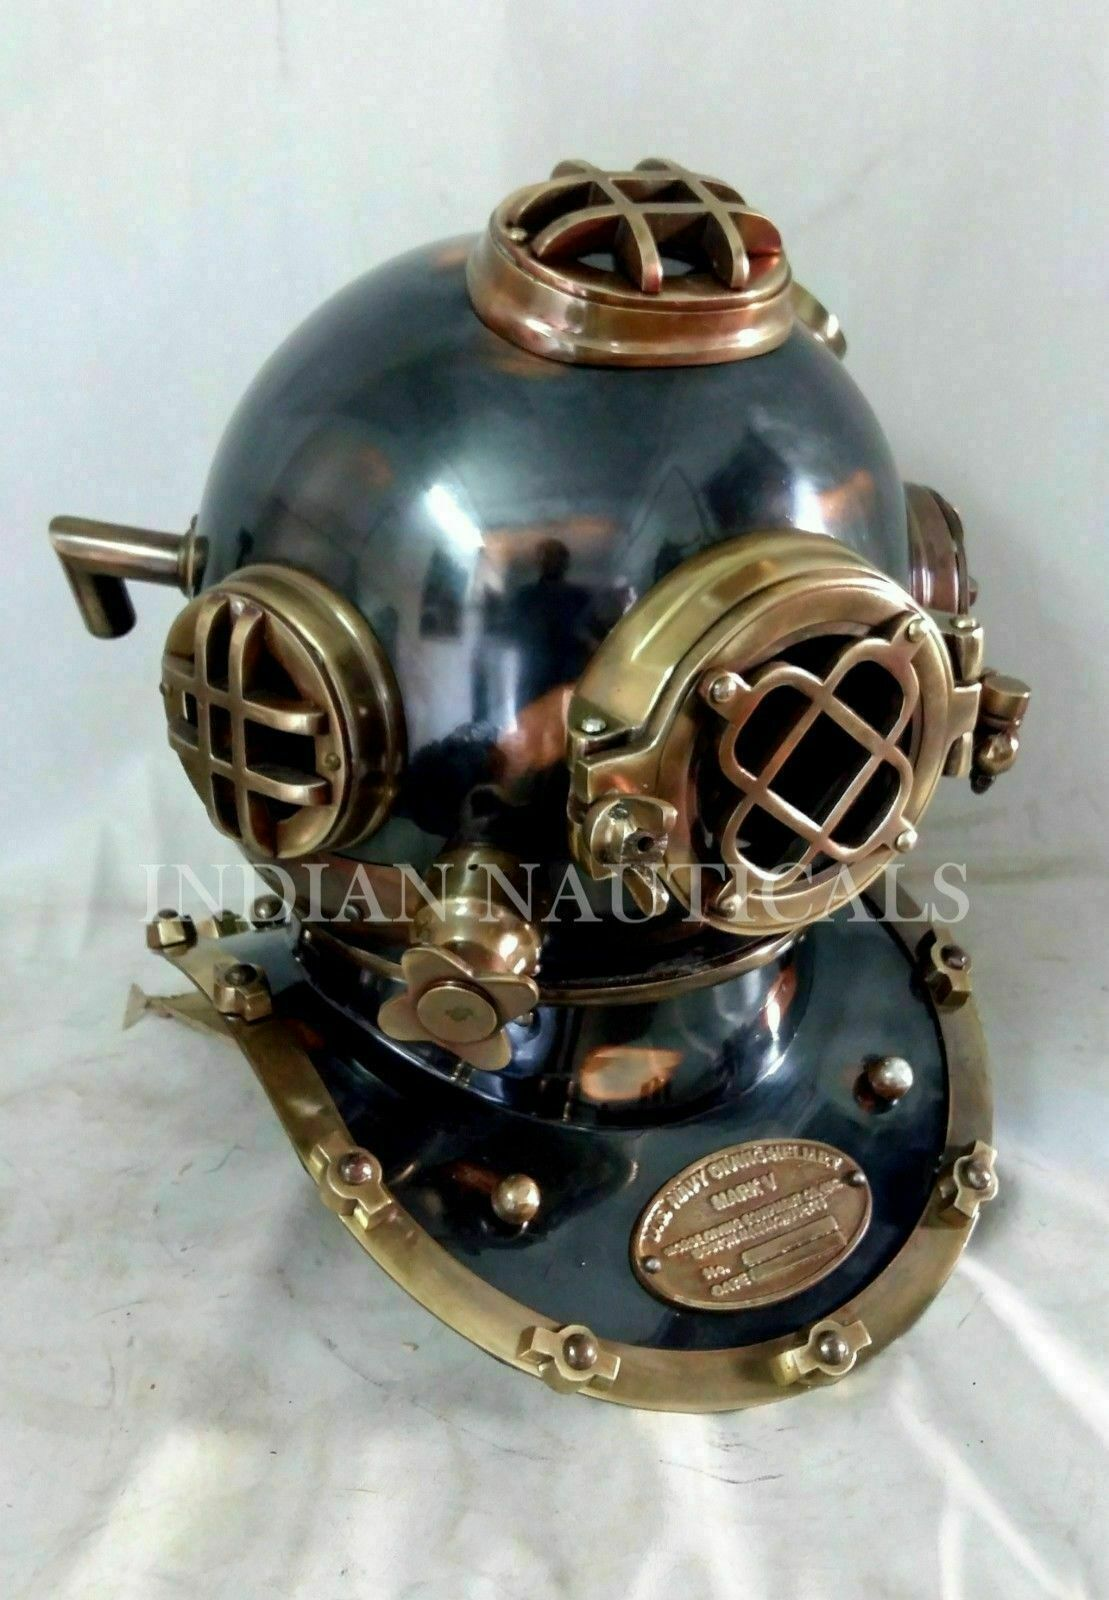 US Navy Mark V Antique Diving Divers Helmet Brass Steel Full Size Maritime Gift - $141.55